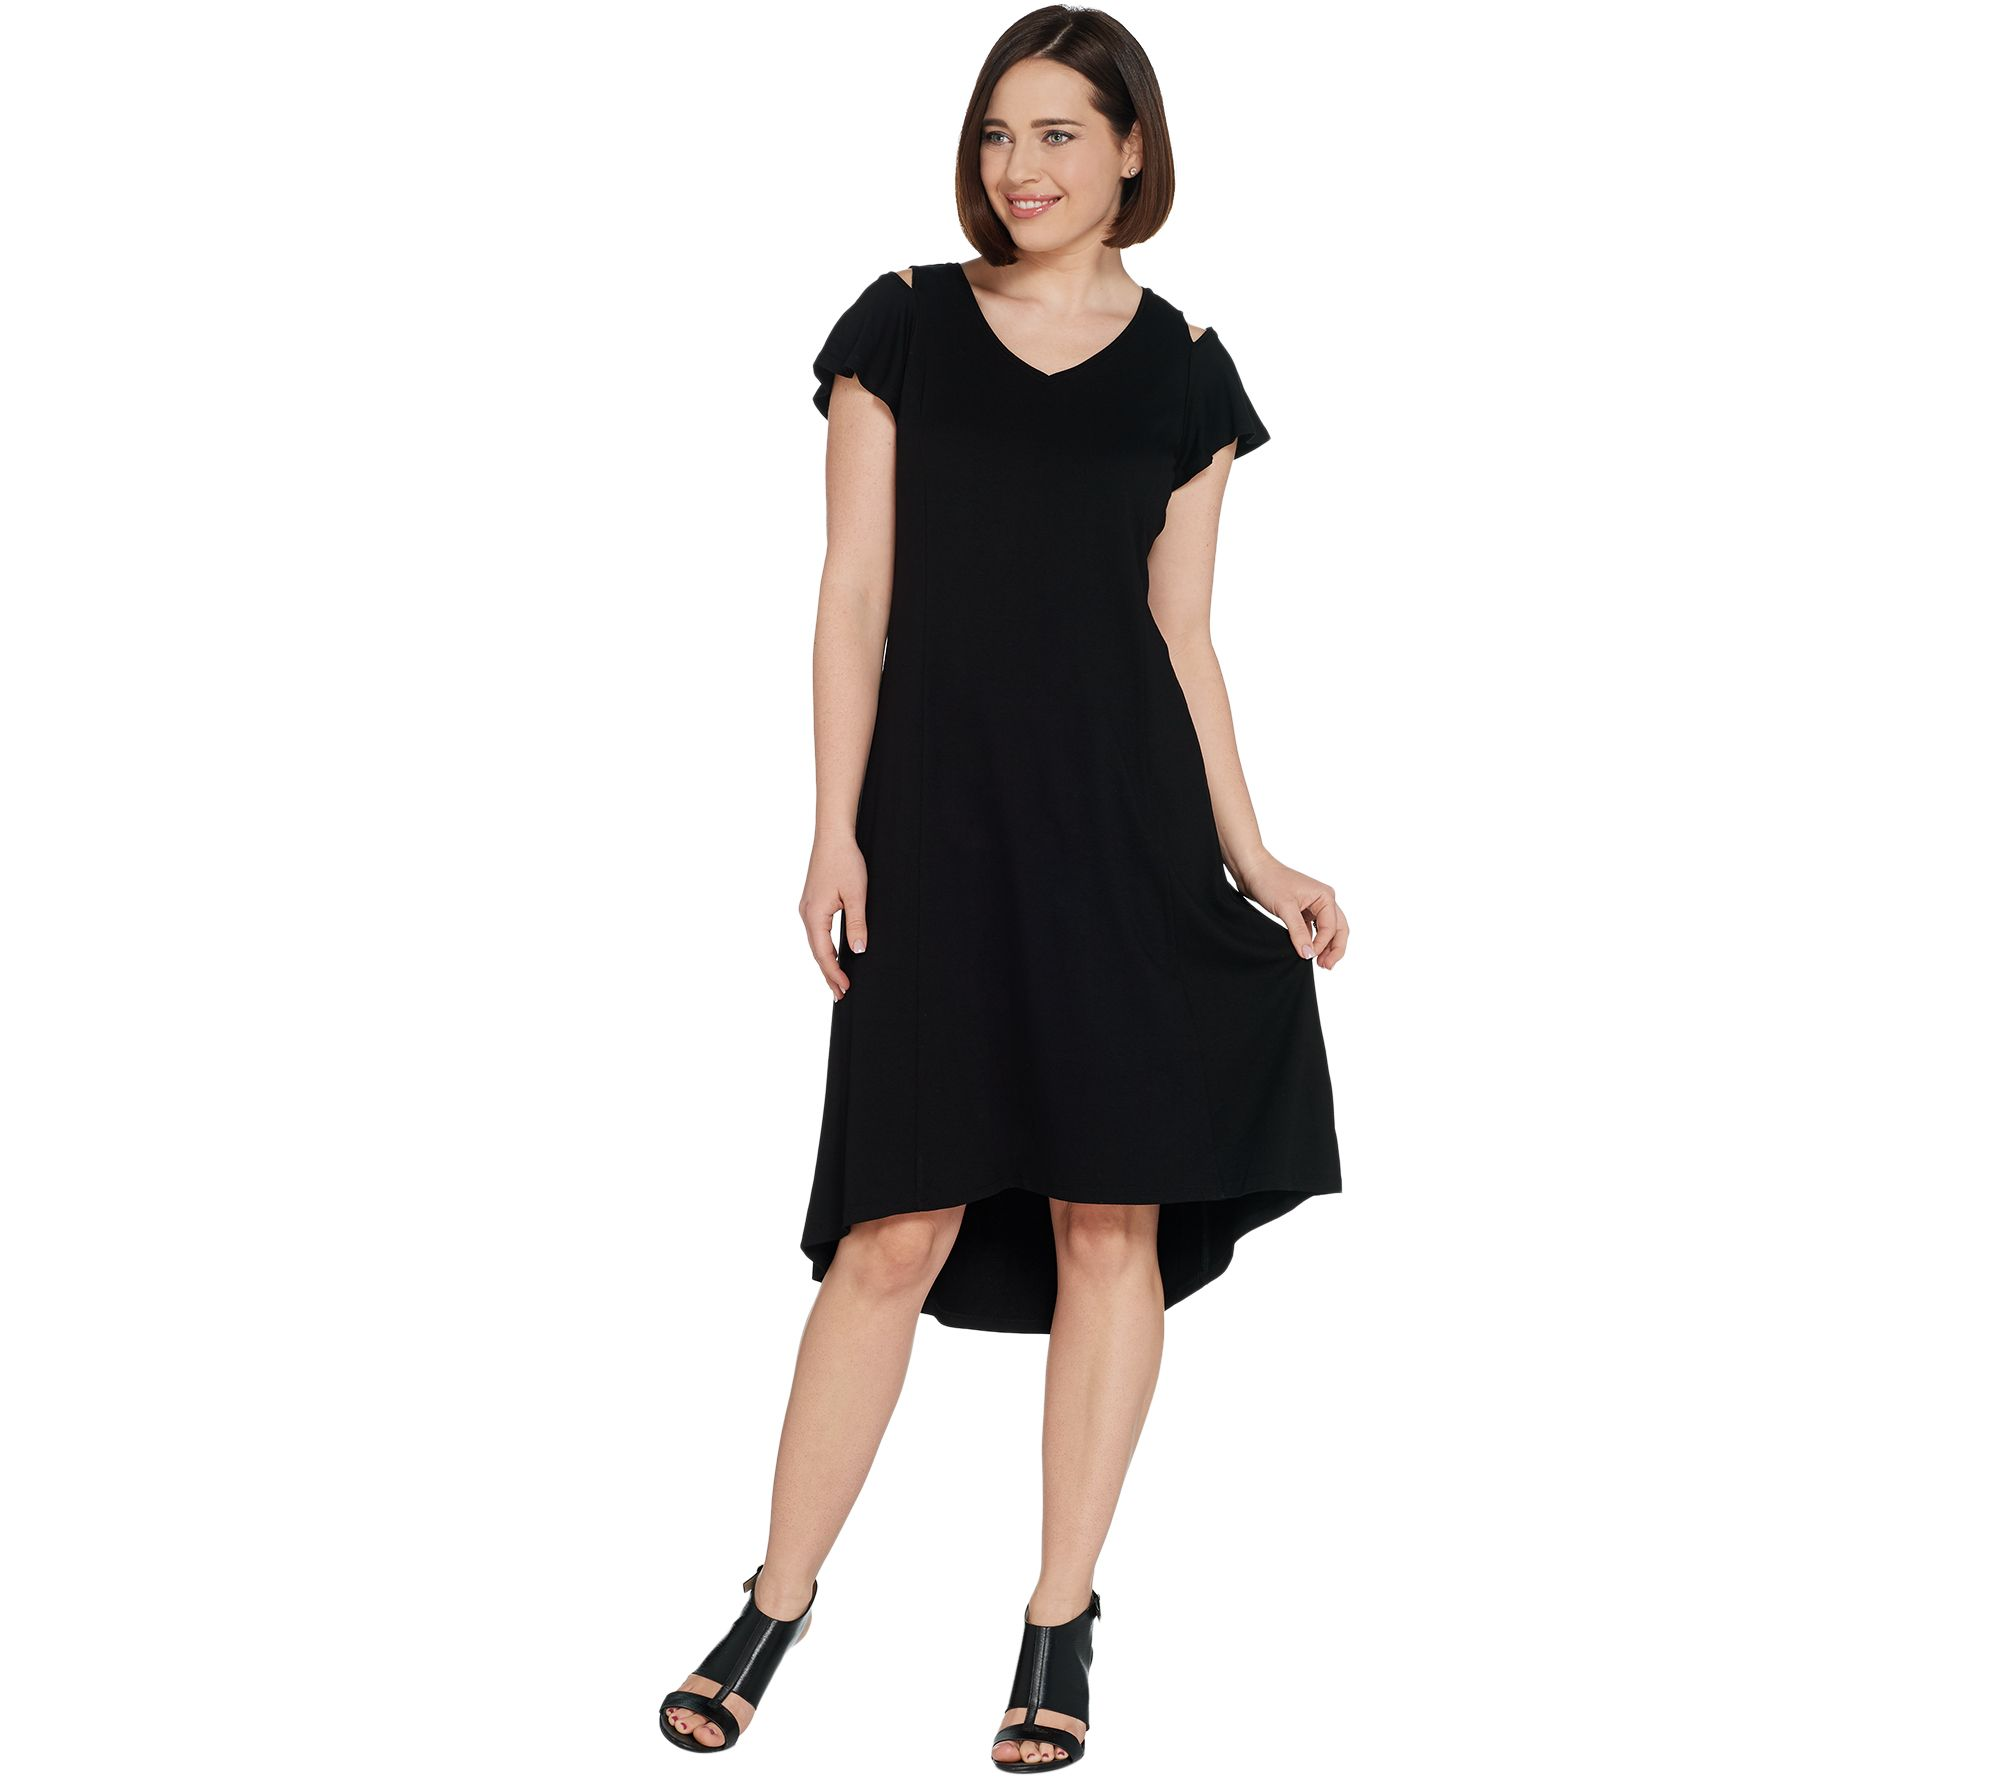 87acfdab166a36 H by Halston Petite Knit Crepe Dress with Cutout Detail - Page 1 ...